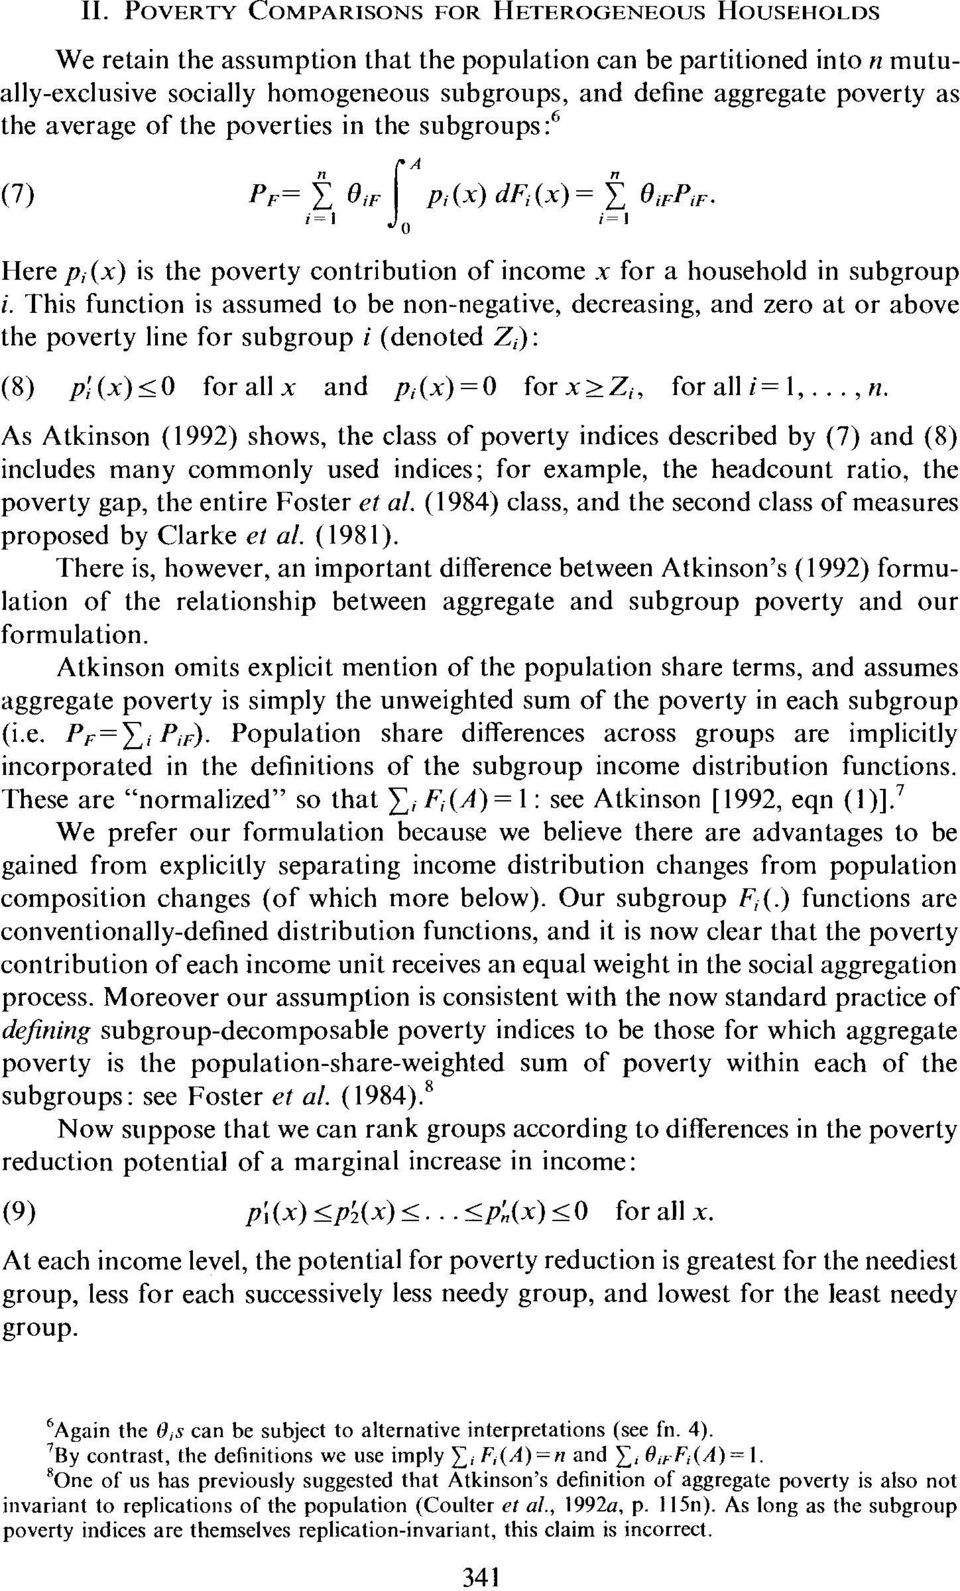 This function is assumed to be non-negative, decreasing, and zero at or above the poverty line for subgroup i (denoted Z,): (8) pj(x)~o forallx and pi(x)=o forx>z;, foralli=l,..., n.